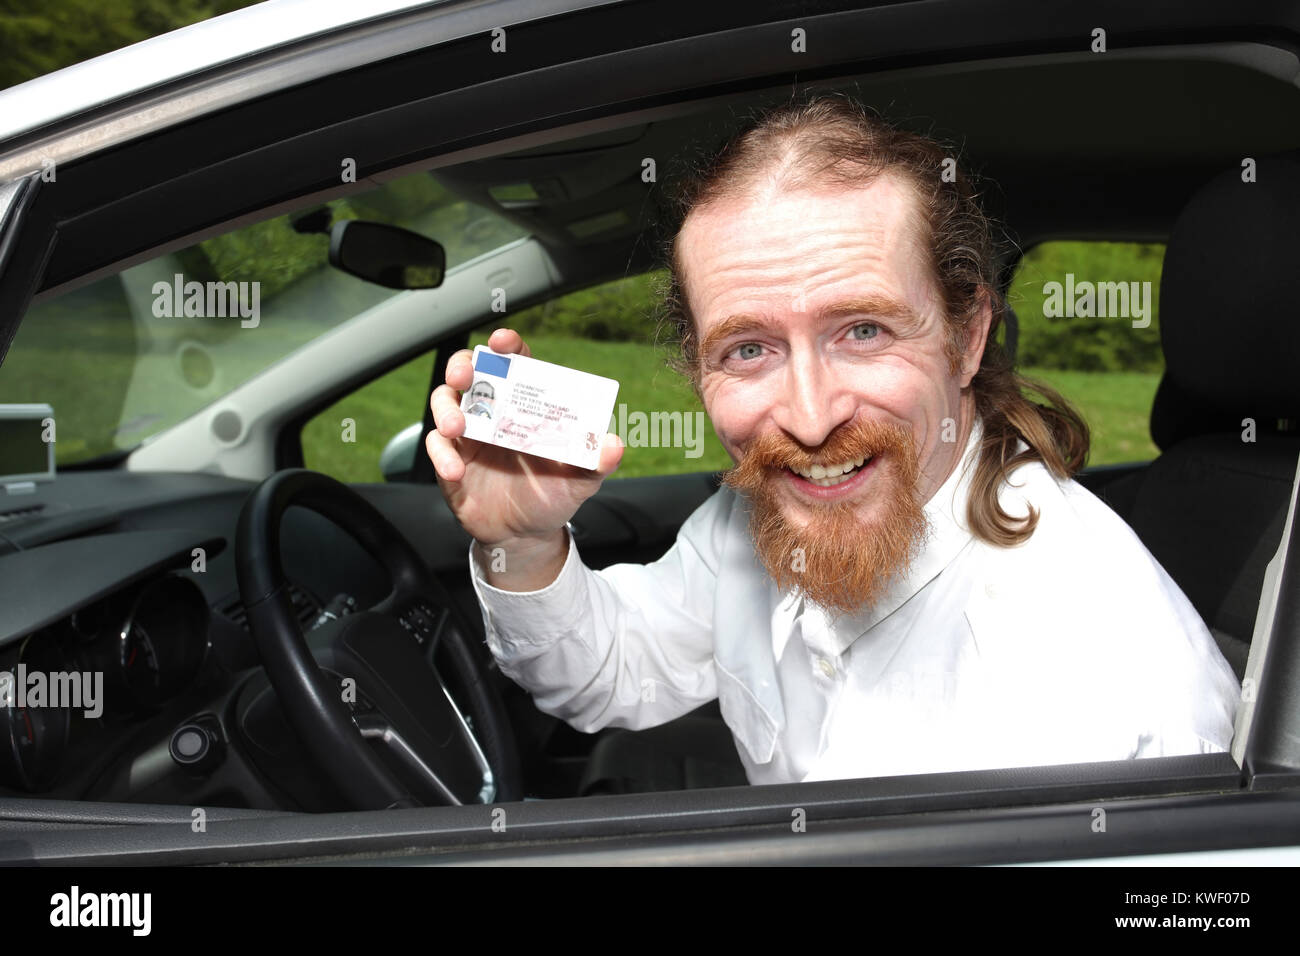 driver smiling sitting in car and showing drivers license - Stock Image